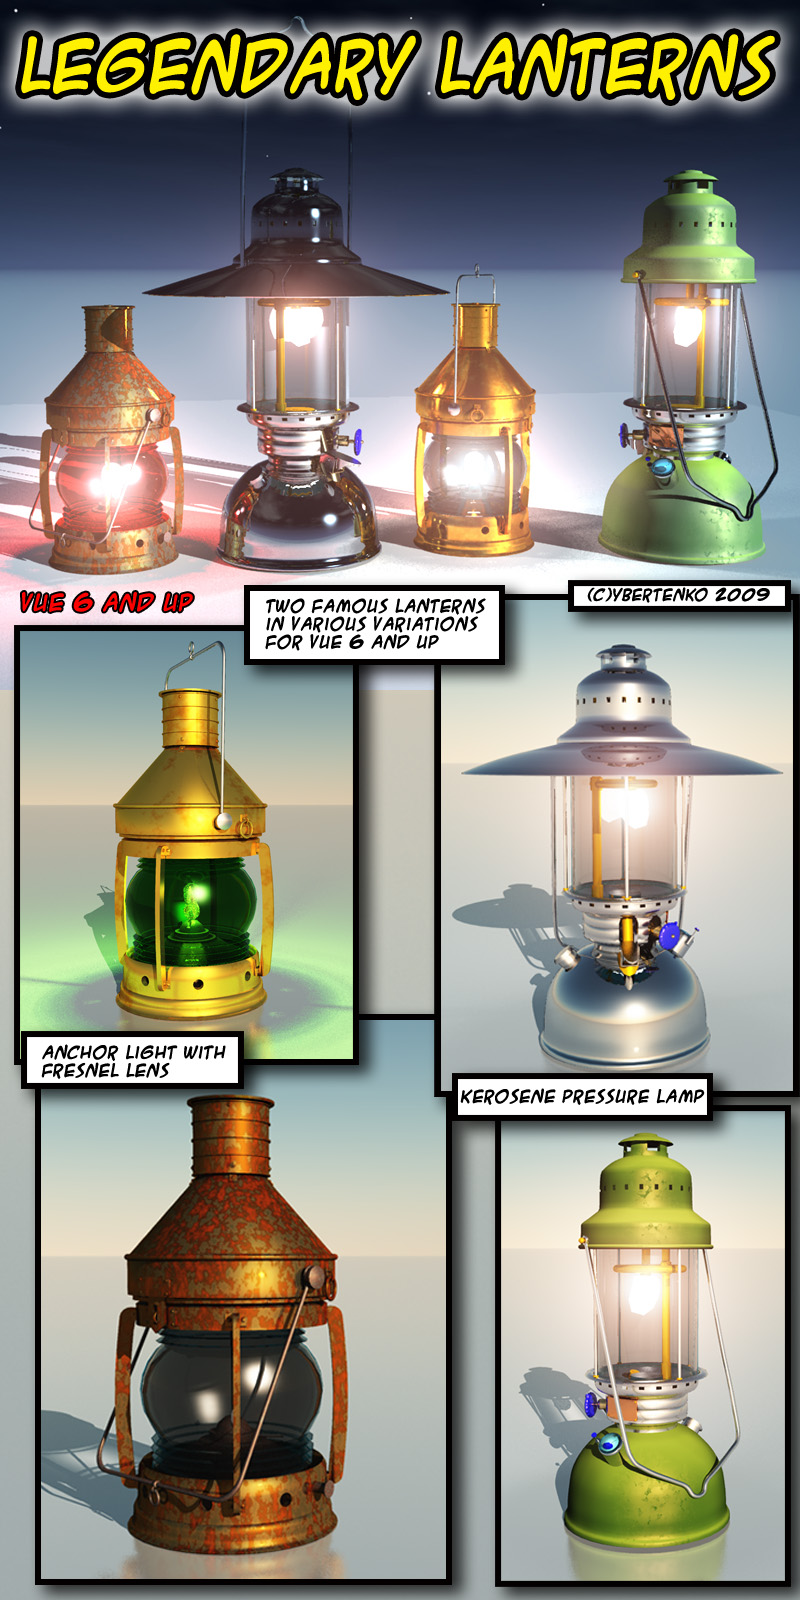 Legendary Lanterns